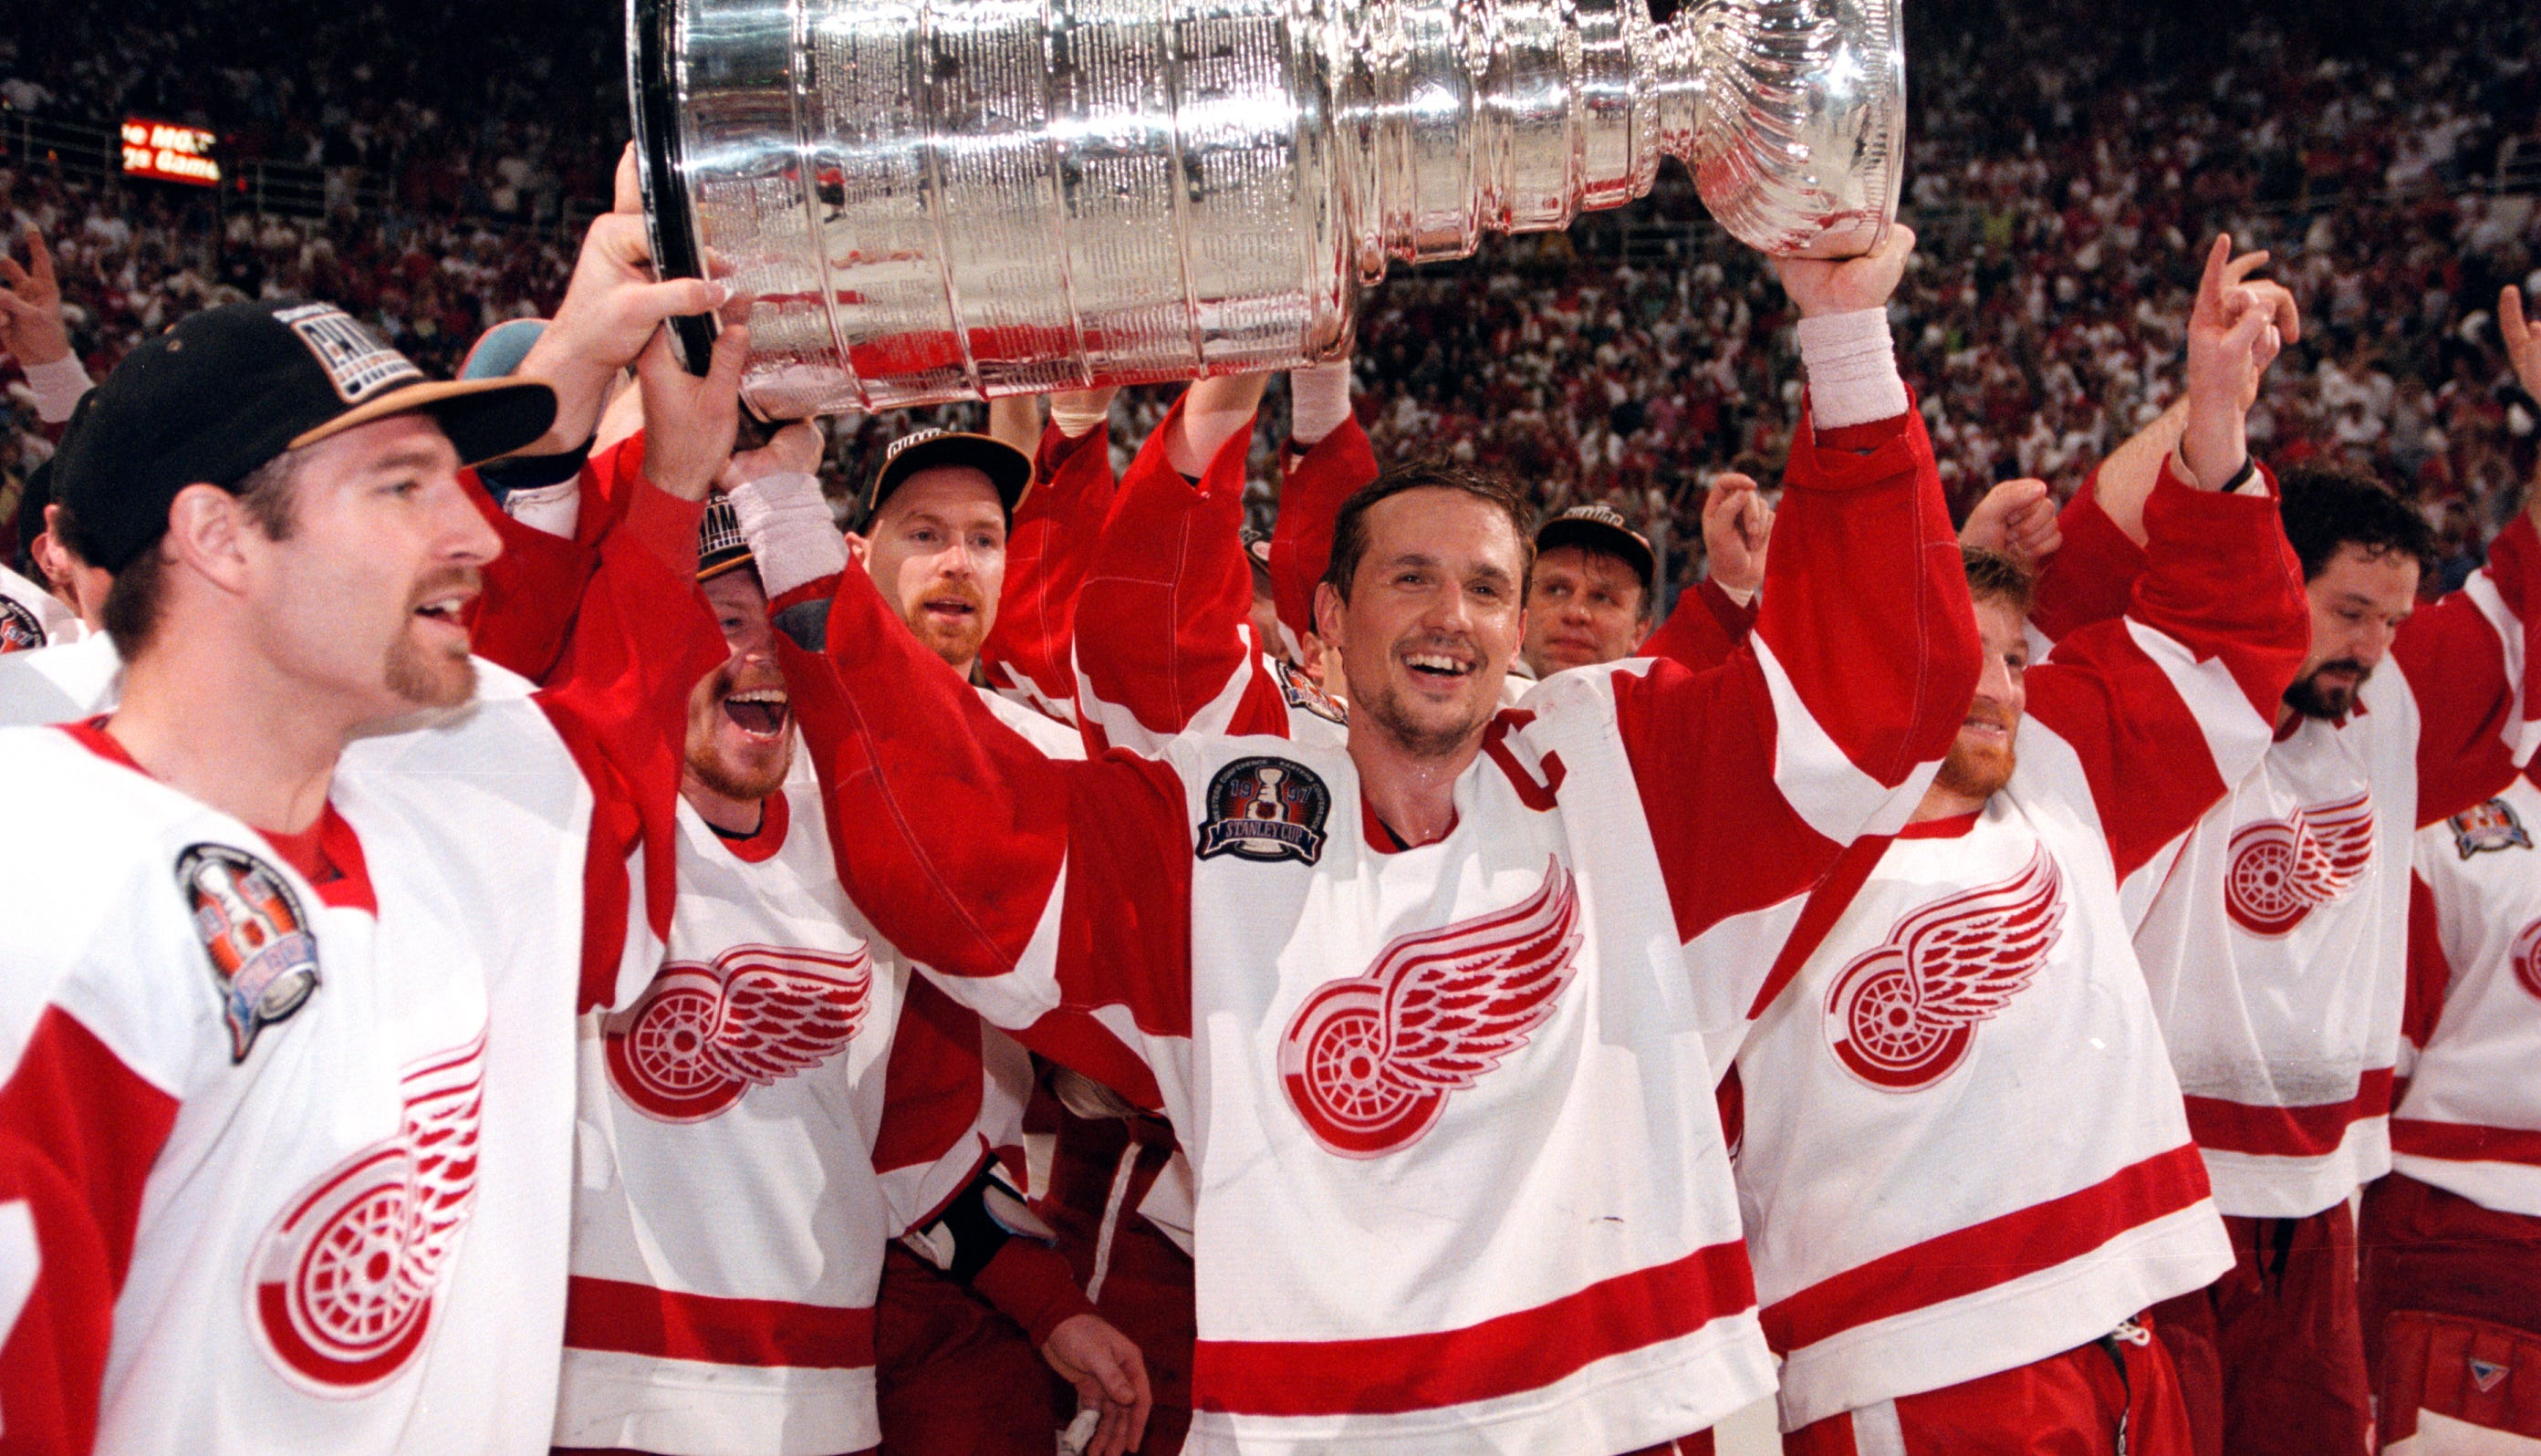 Yzerman rules: Wings GM applies lessons from 14-year Cup drought